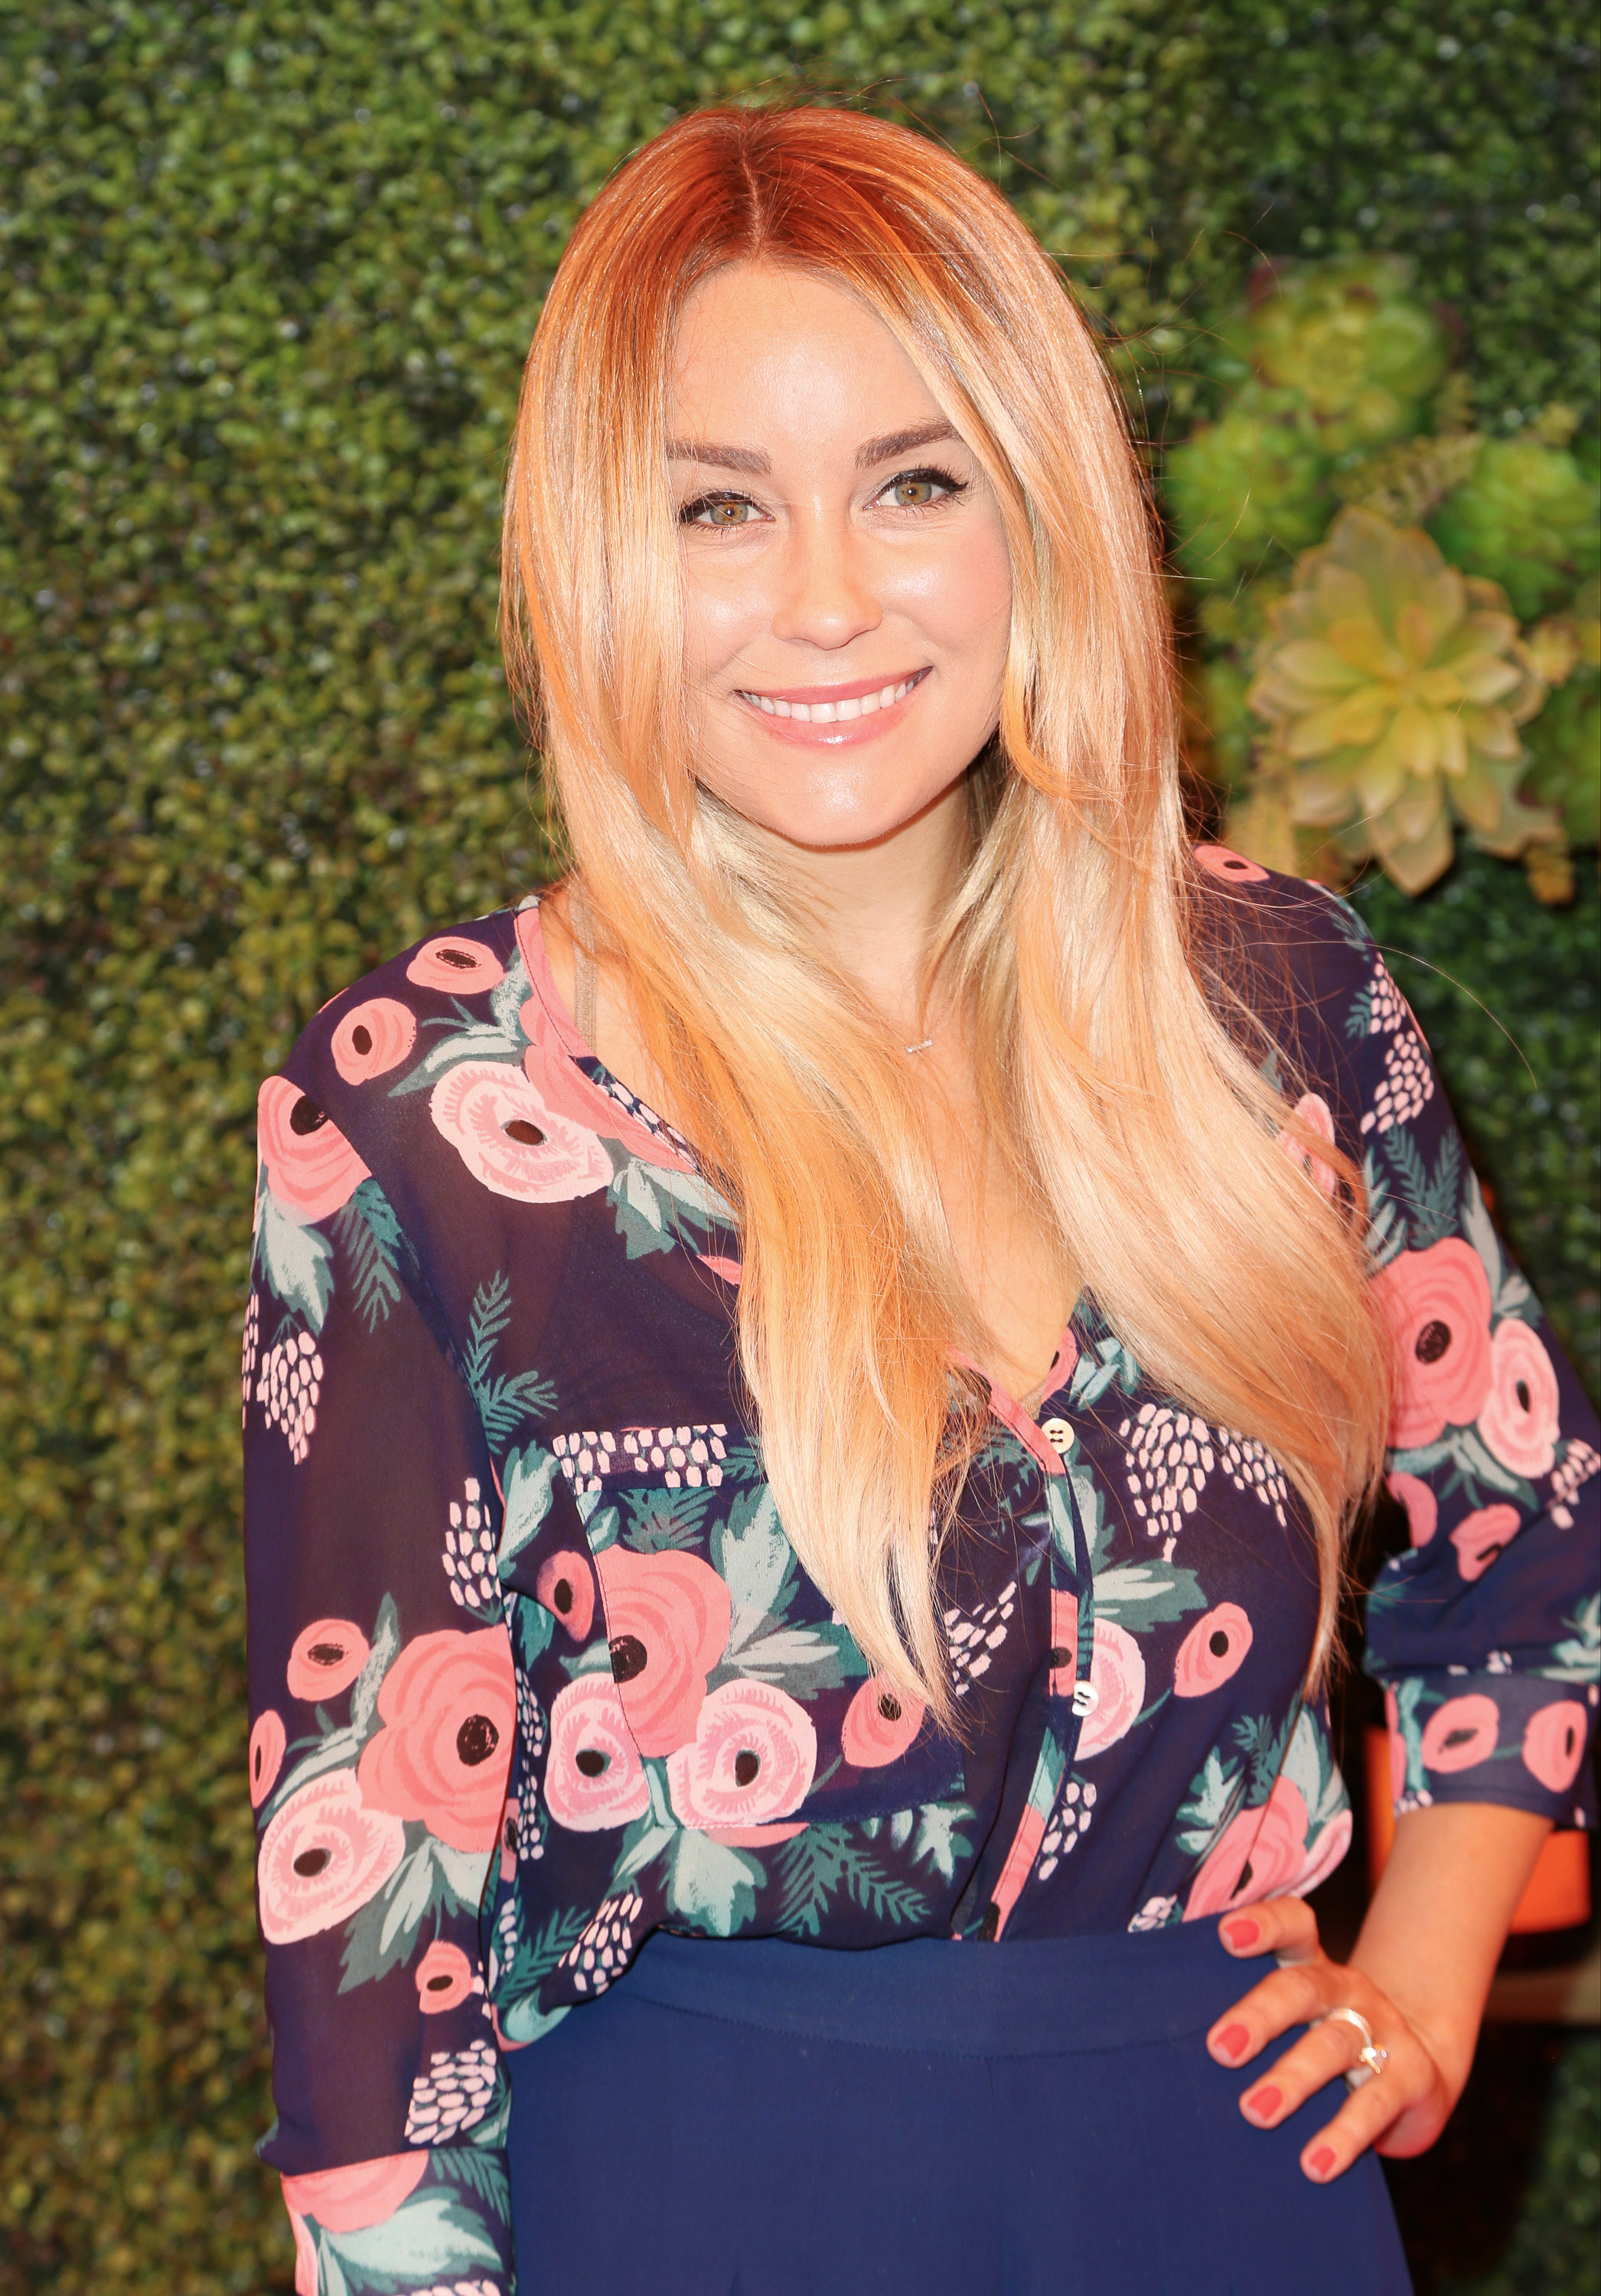 Lauren Conrad at the Fifth Annual Veuve Clicquot Polo Classic in Pacific Palisades, Calif. on Oct. 11, 2014.